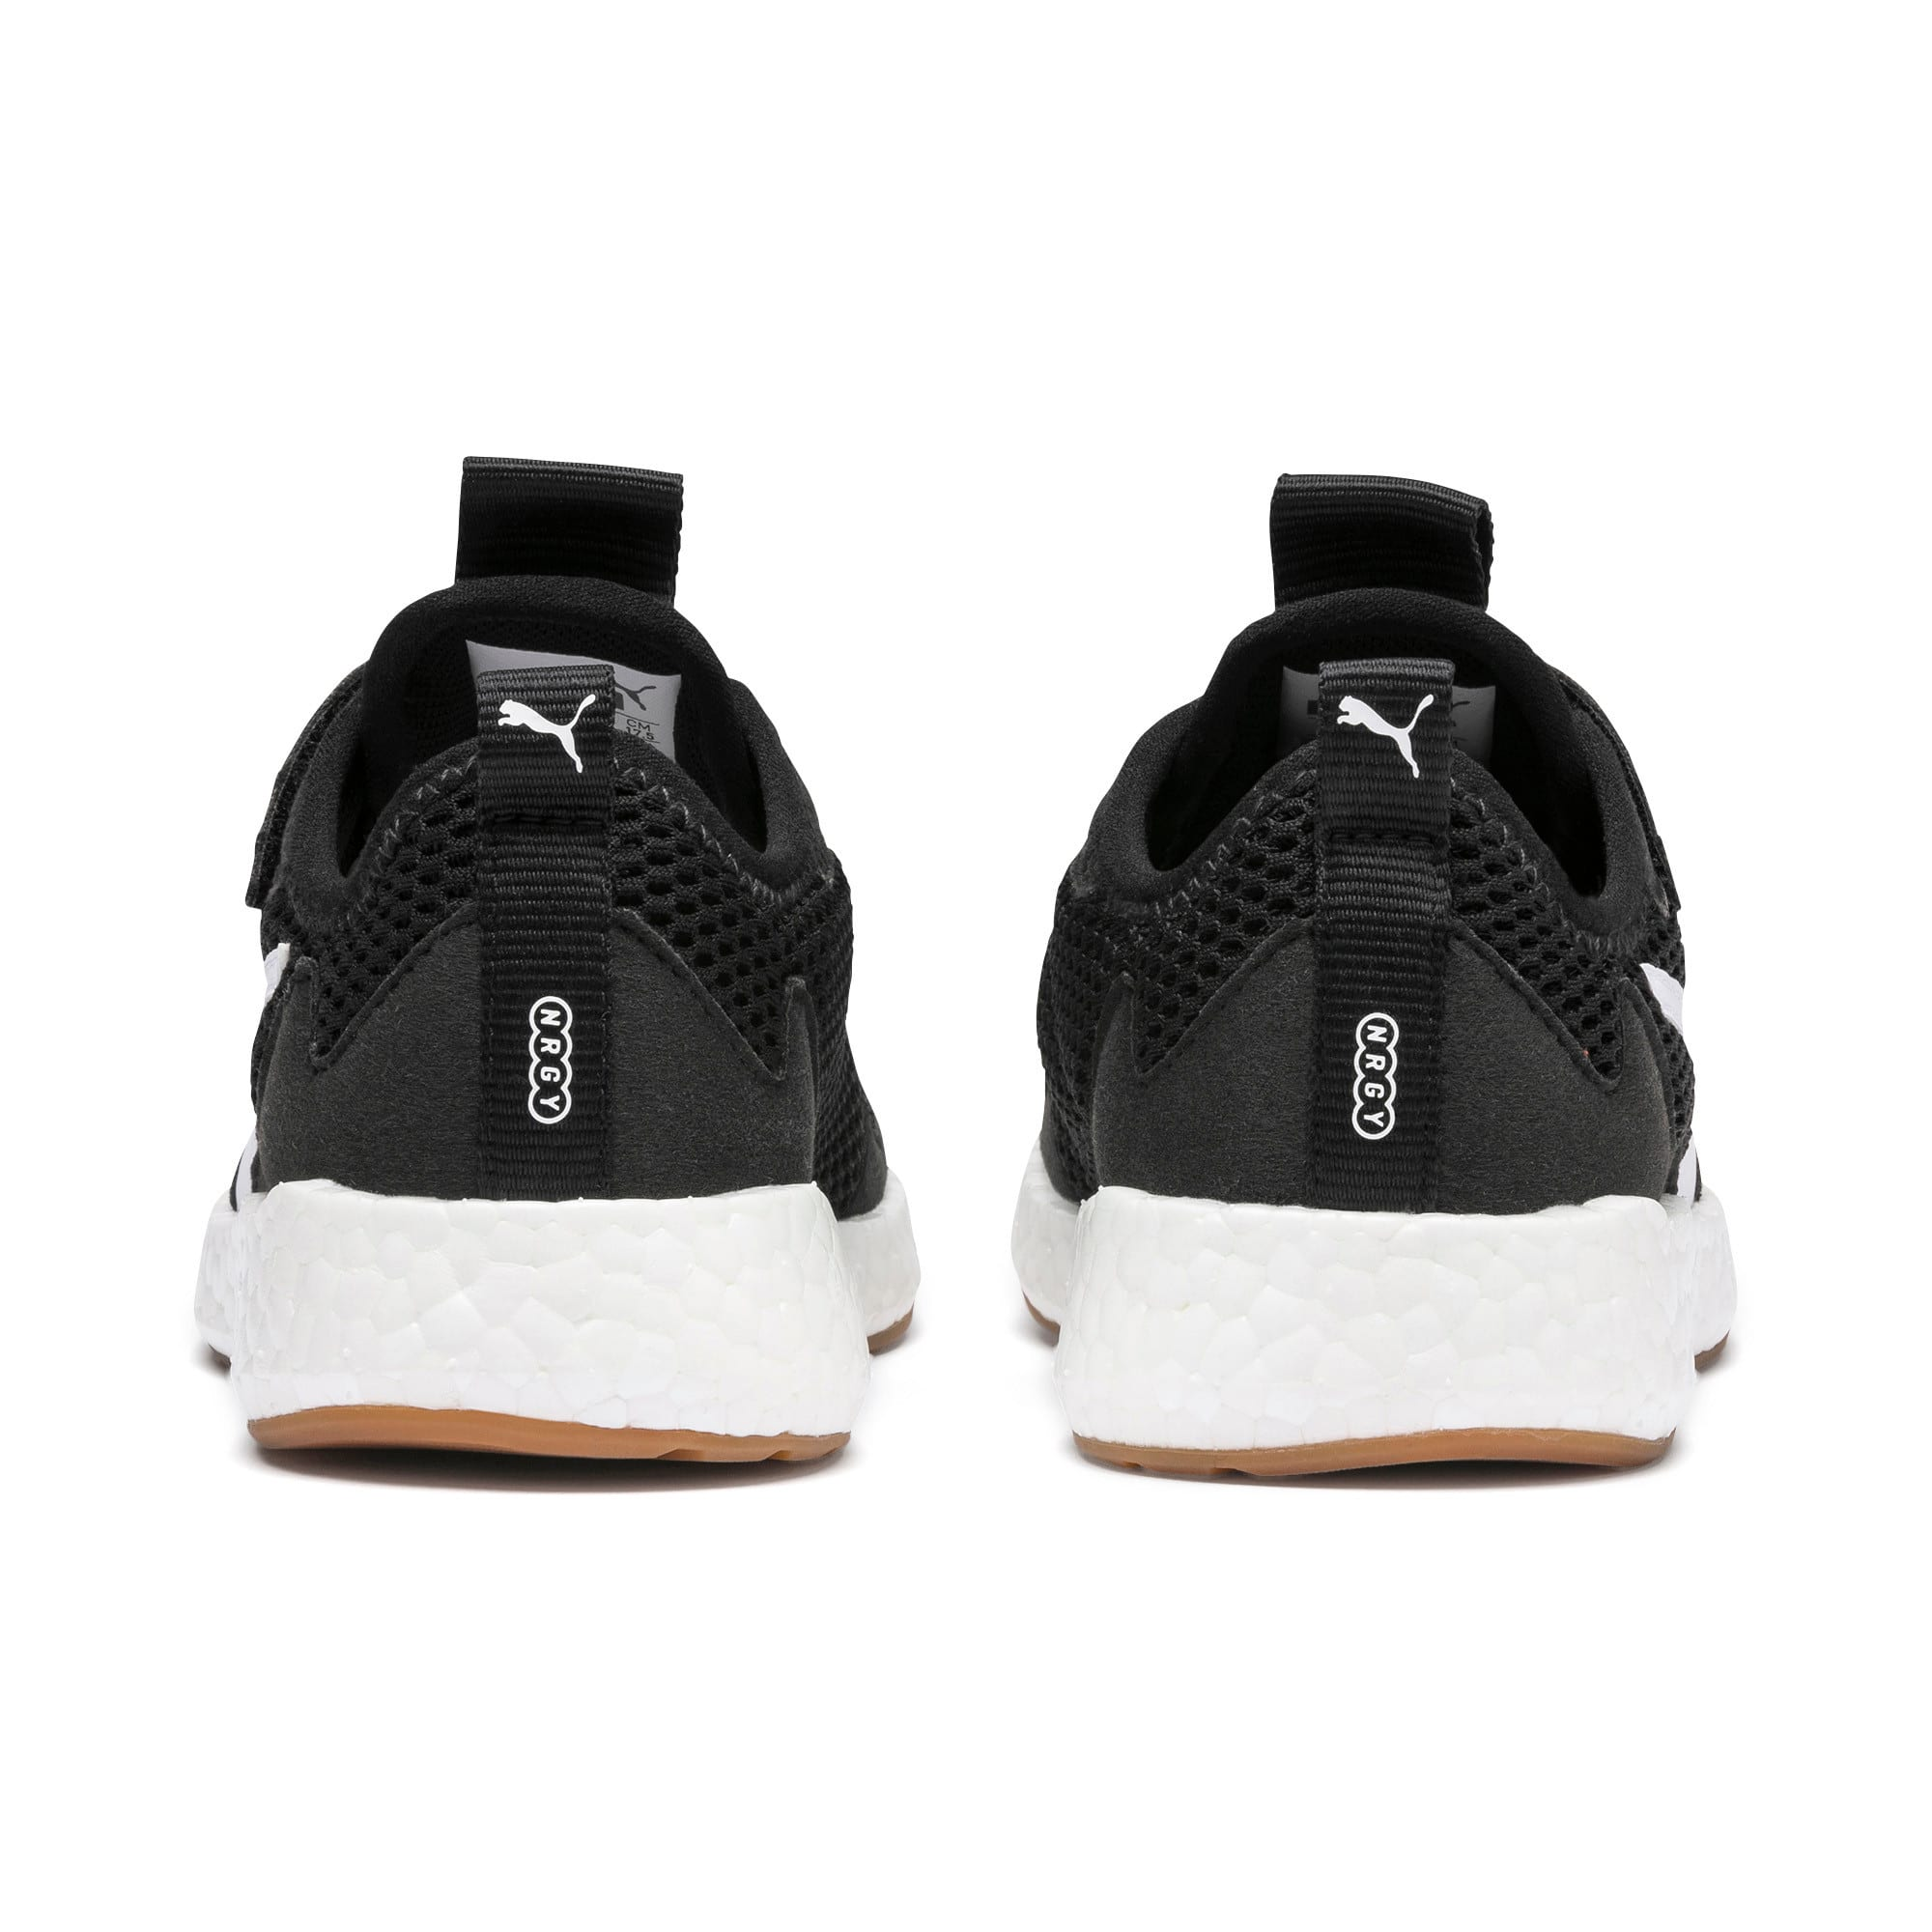 Thumbnail 3 of NRGY Neko Skim AC Kids' Trainers, Puma Black-Puma White, medium